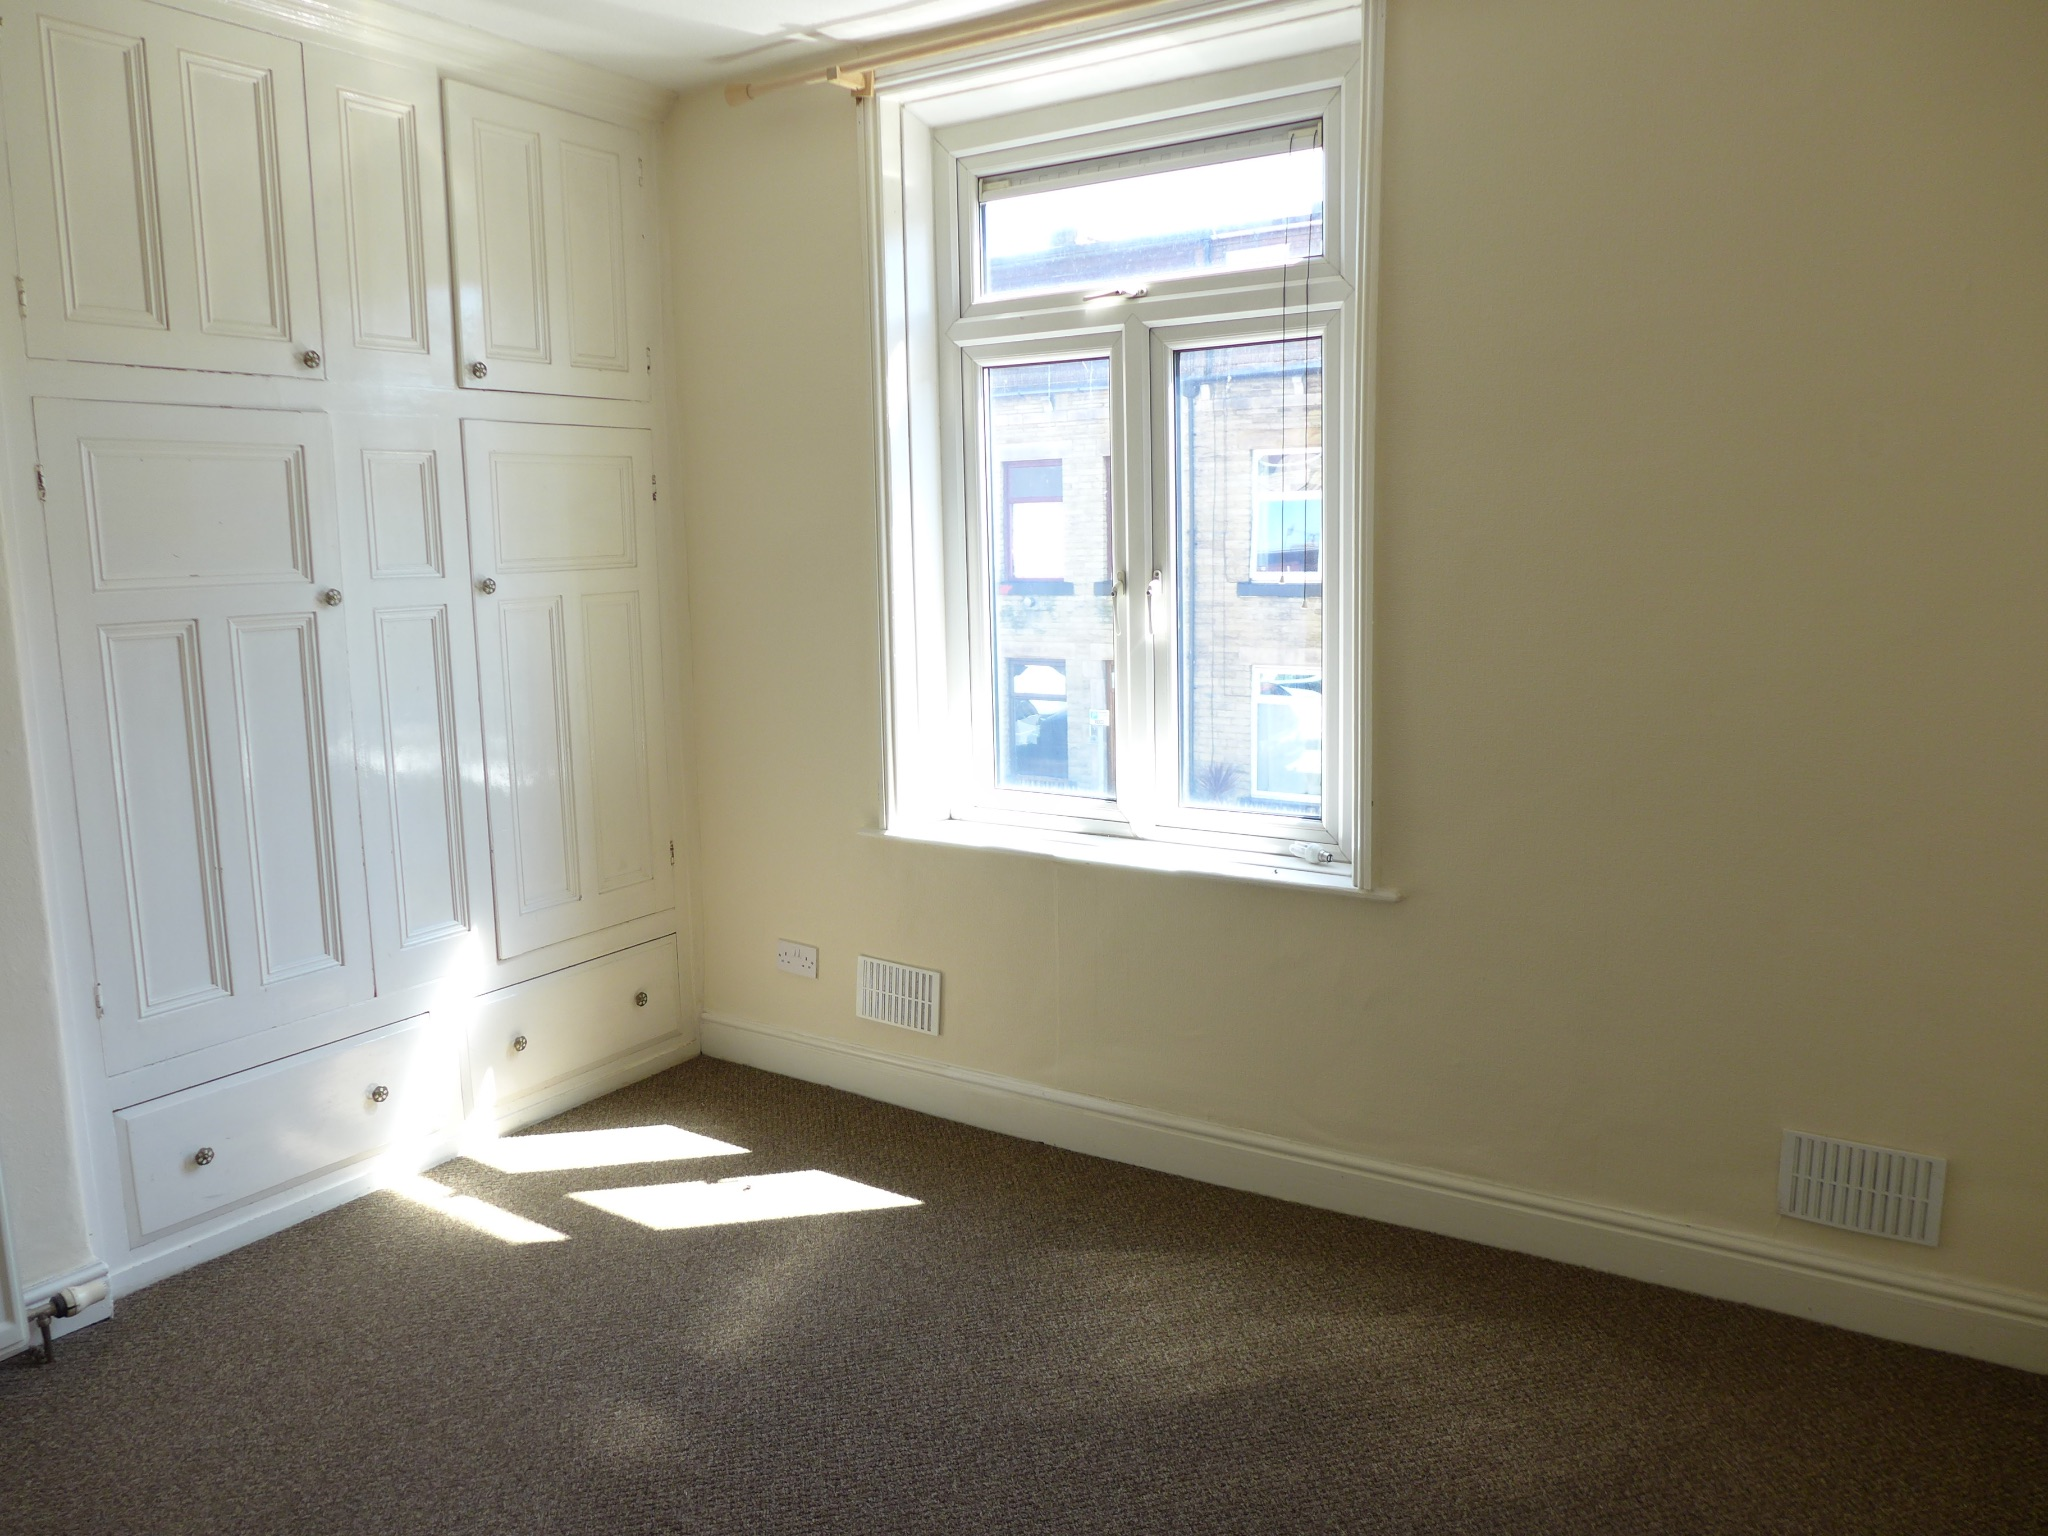 3 bedroom mid terraced house For Sale in Todmorden - Photograph 6.